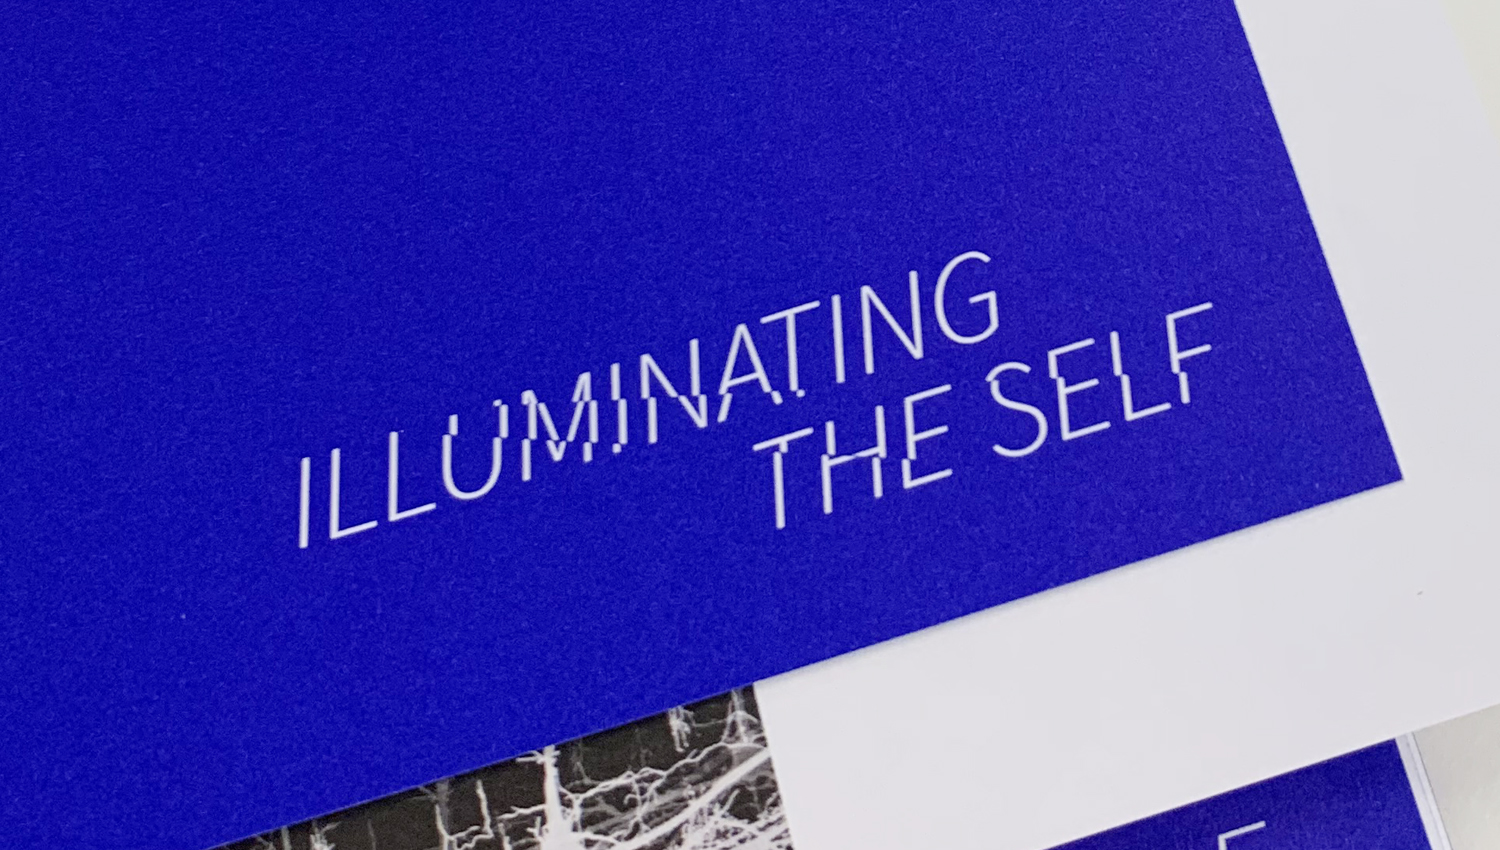 Illuminating the Self at Hatton Gallery and Vane Gallery Newcastle, exhibition identity, brand identity and typography by Altogether Creative.